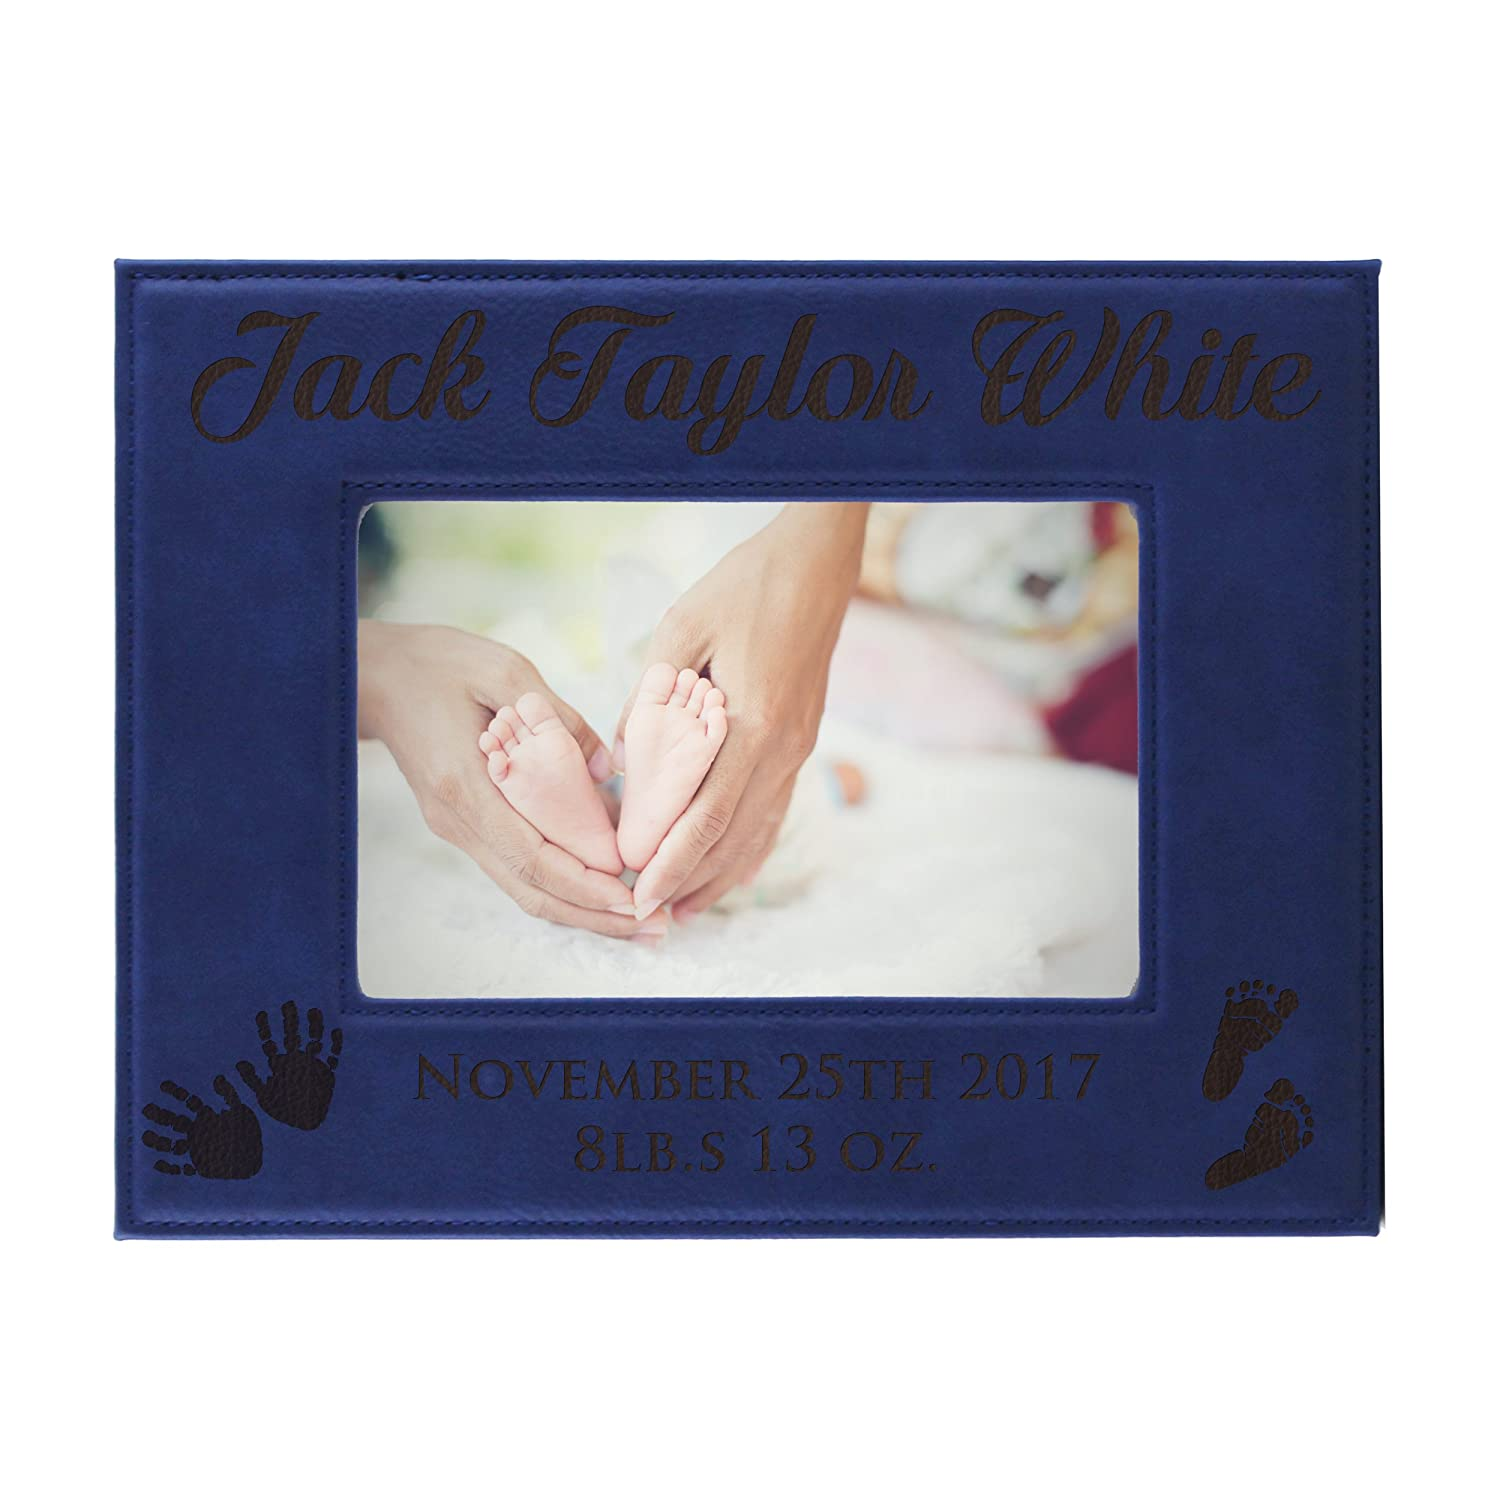 Personalized New Baby Photo Frame Monogrammed for Free 5 x 7 Custom Engraved Boy Girl Picture Frame Gift